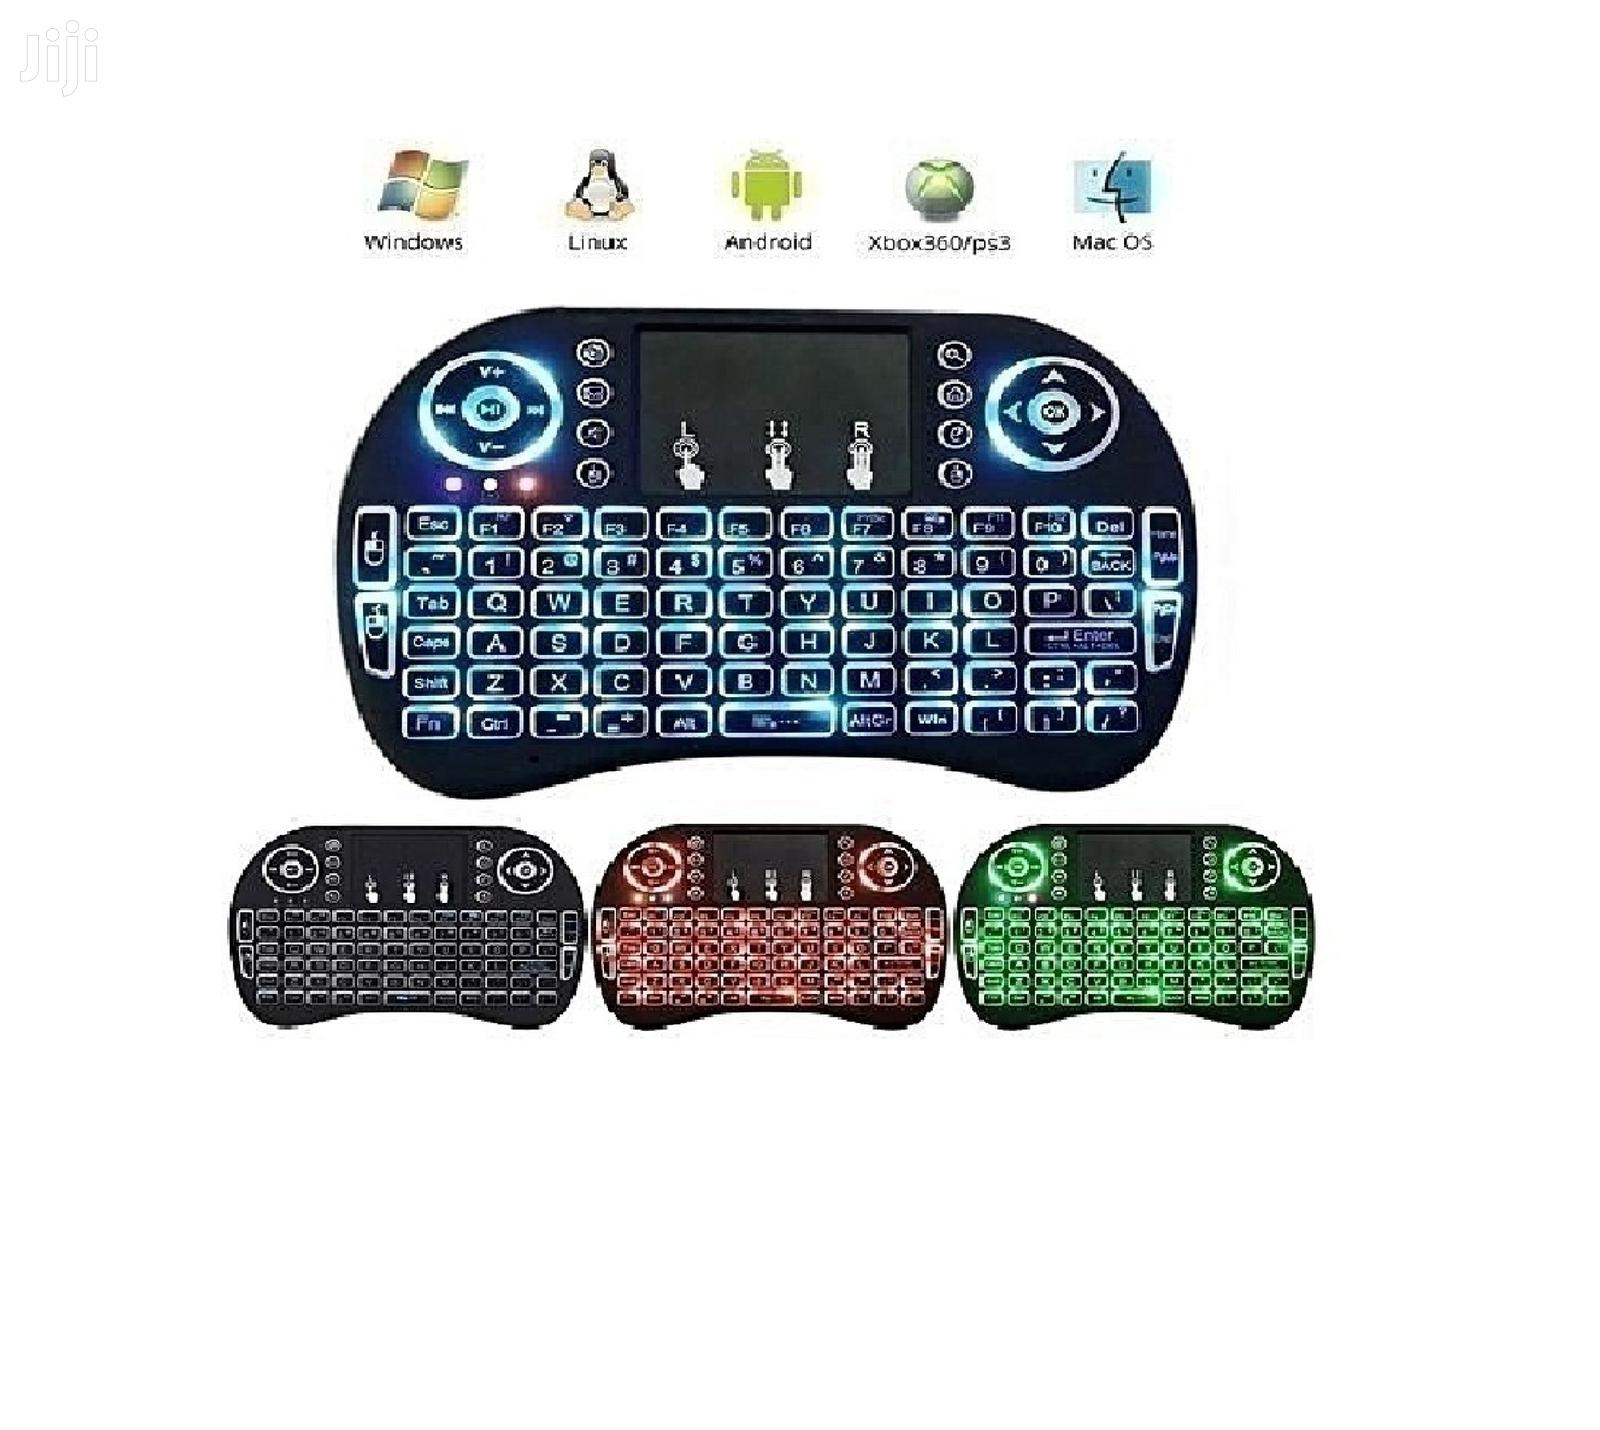 New Wireless Mini Keyboard With Mouse. Recharged Battery